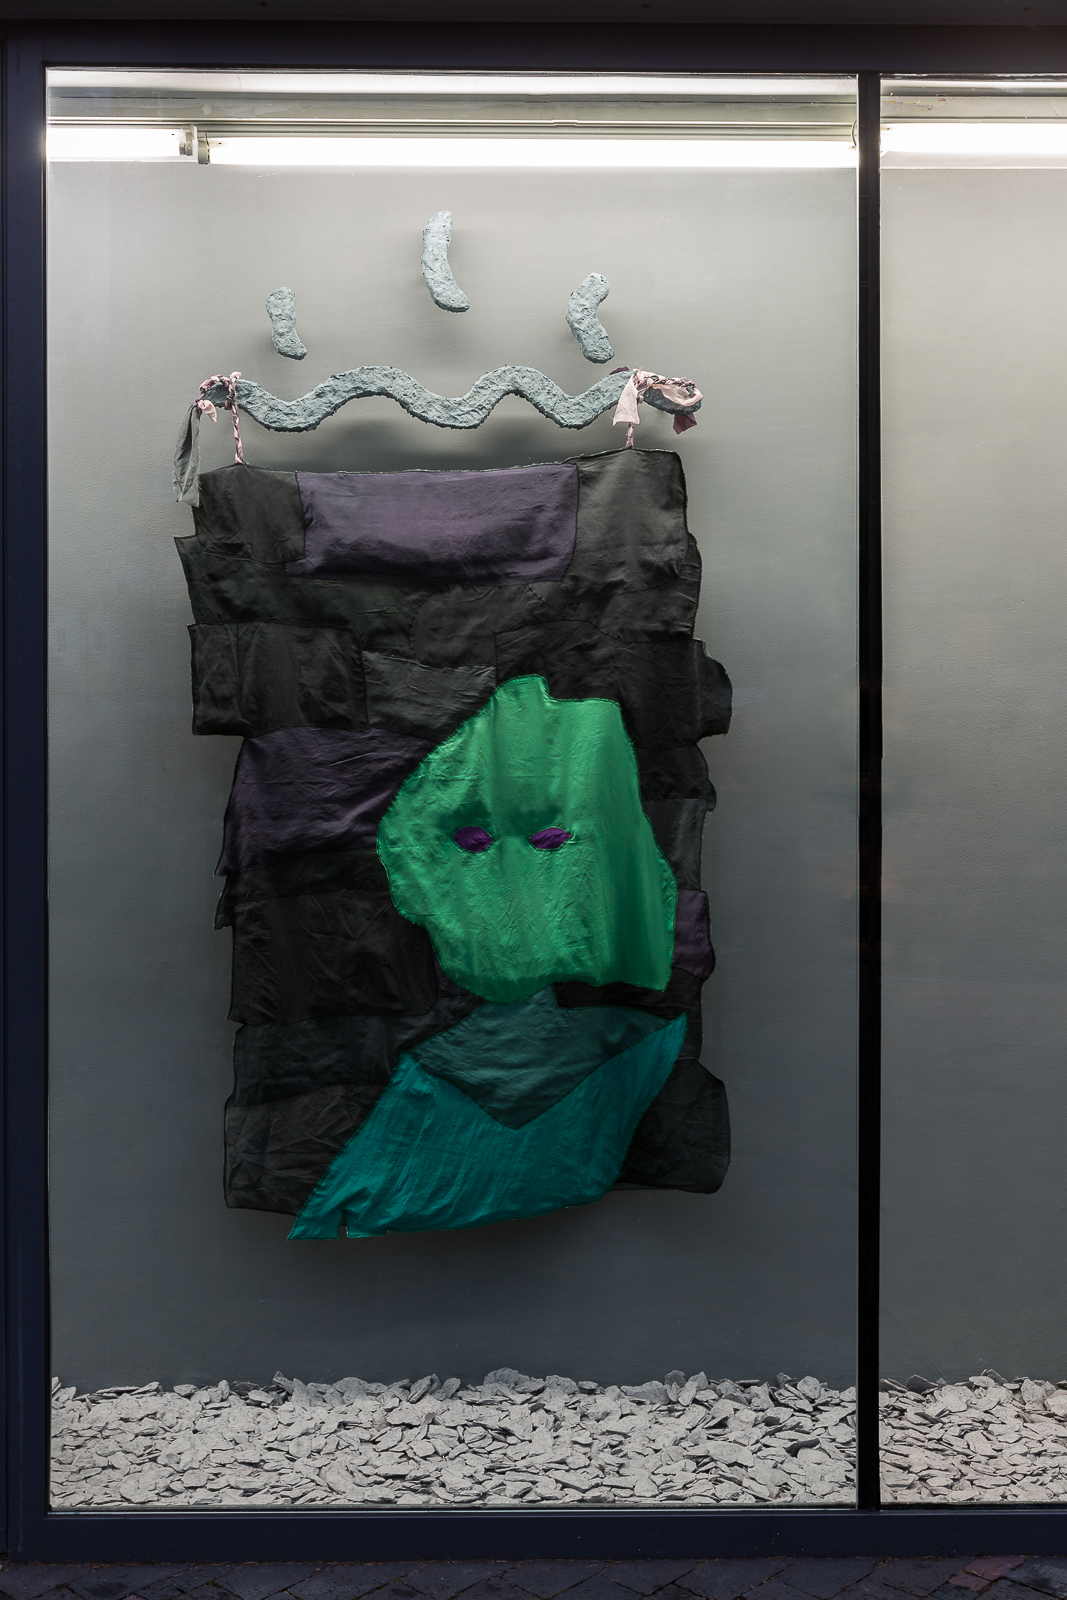 Alfie Strong, Choronzon, my Shadow, 2018. Silk, cotton, cotton thread, papier-mâché, water from Gormire Lake. 105 x 195 x 10 cm. Photographer: Ollie Harrop.